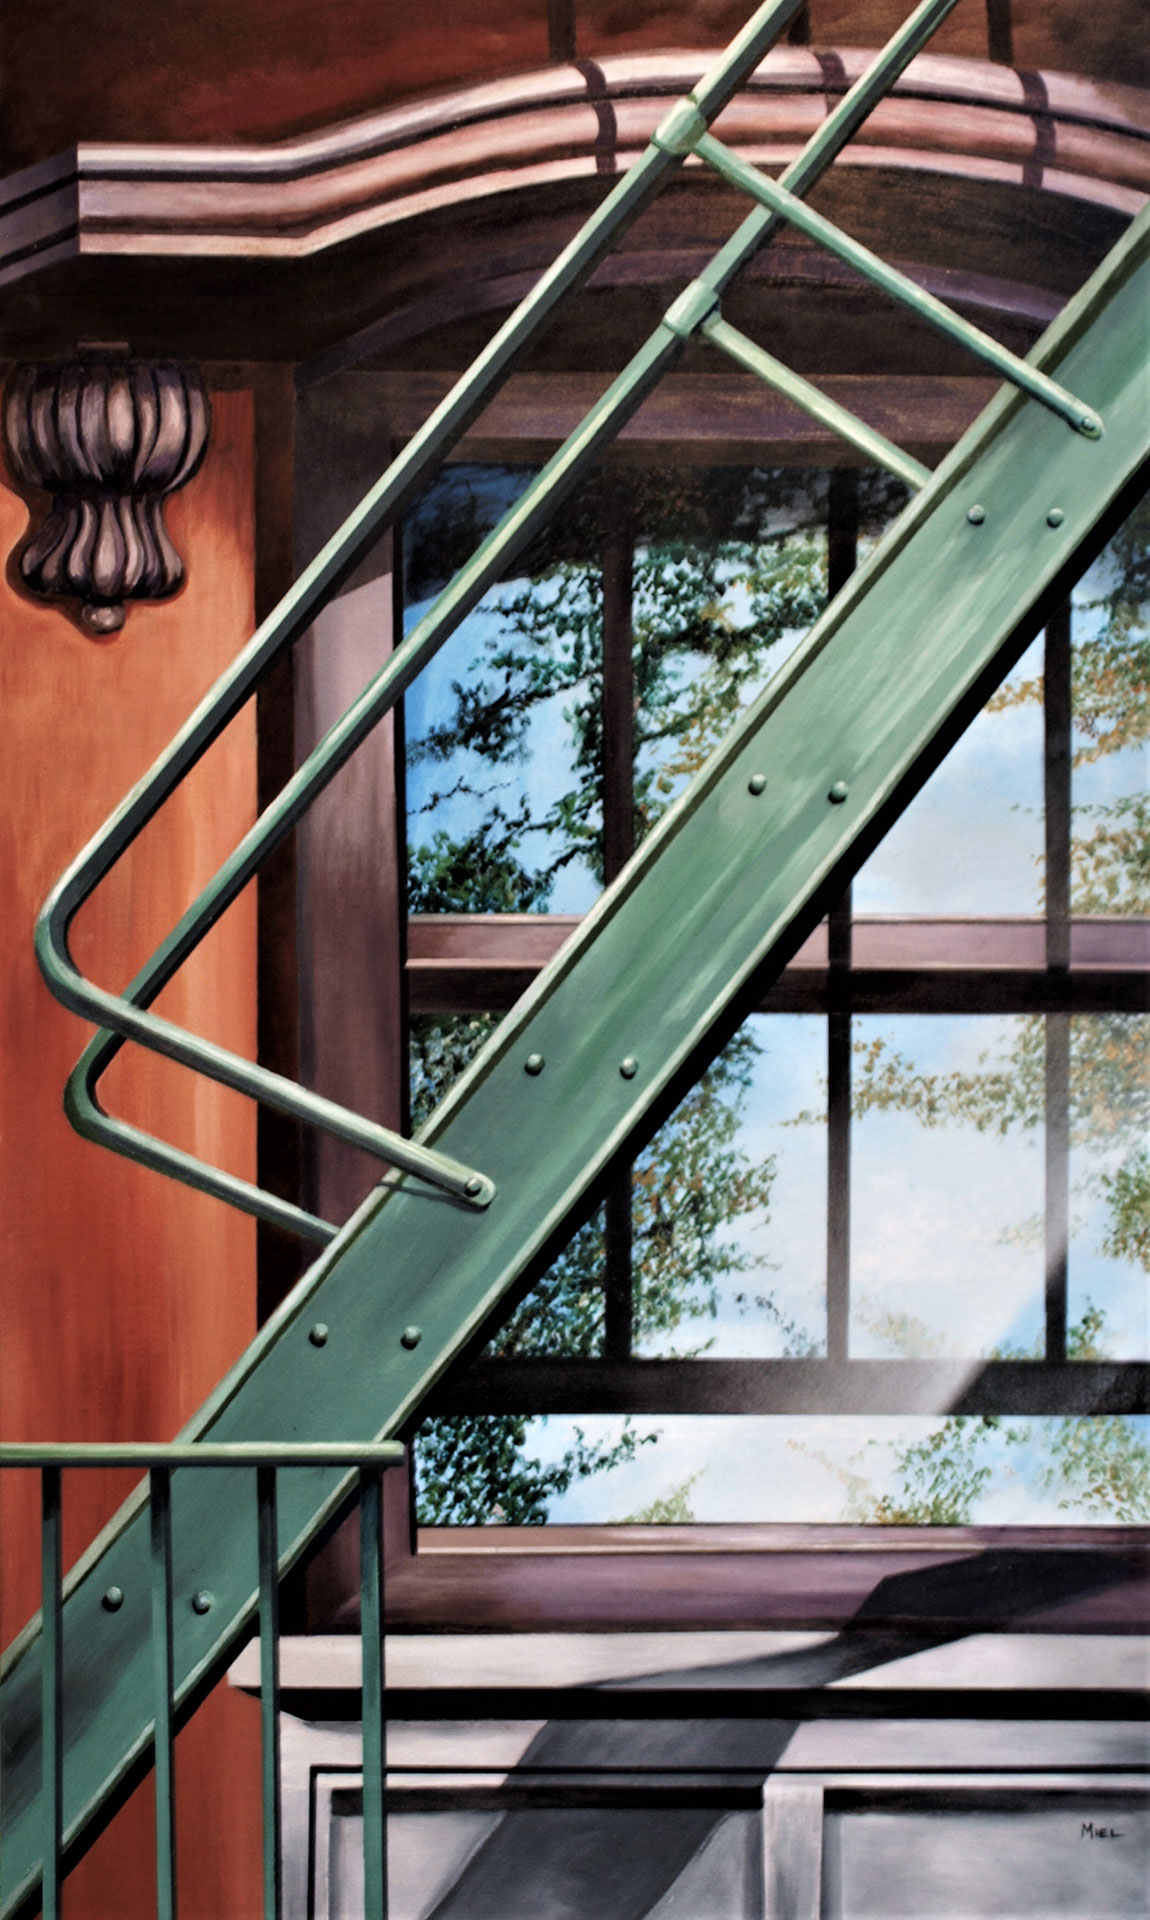 Robert Mielenhausen, Up on the roof, 40 x 24 inches. Acrylic on canvas on board.